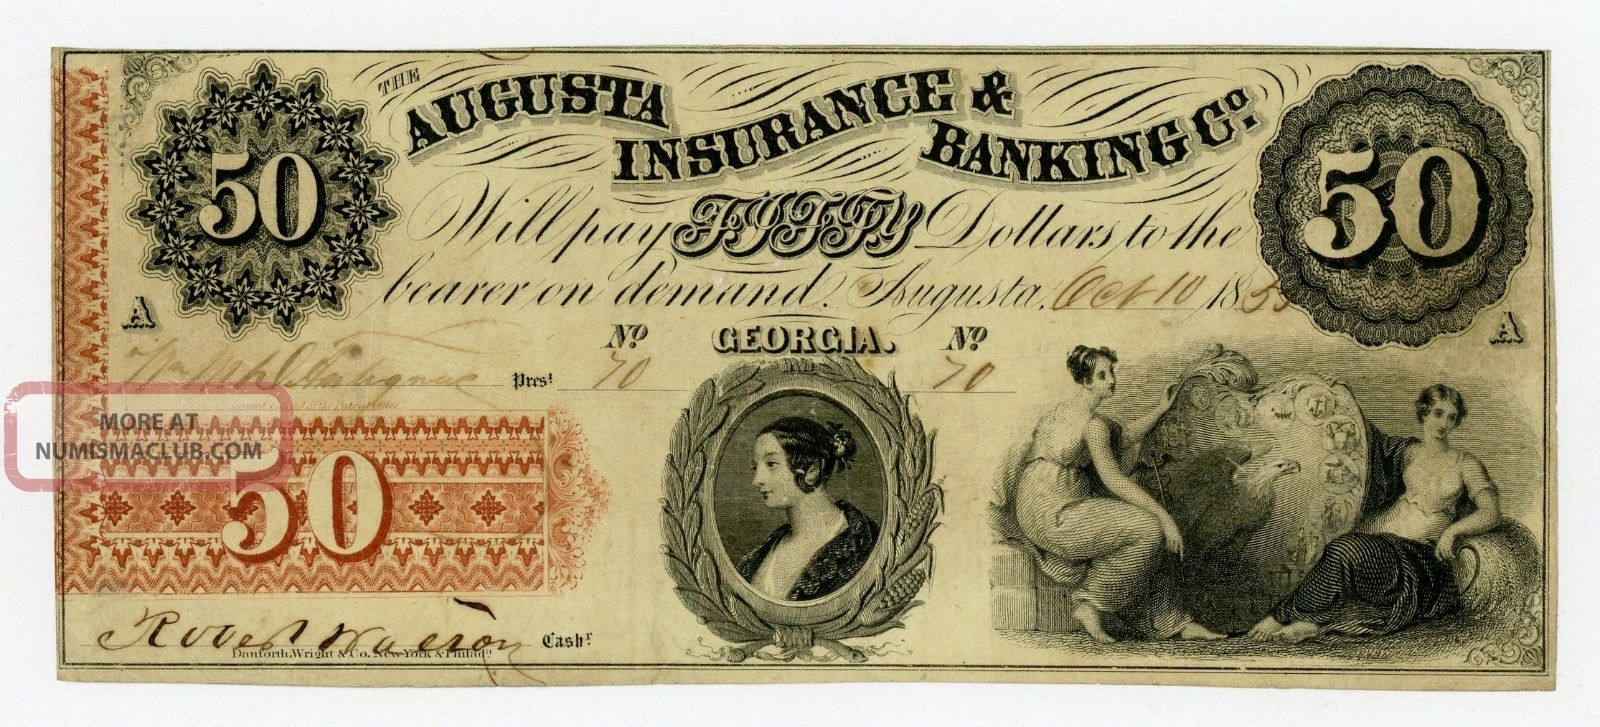 1855 $50 The Augusta Insurance & Banking Co.  - Georgia Note Paper Money: US photo